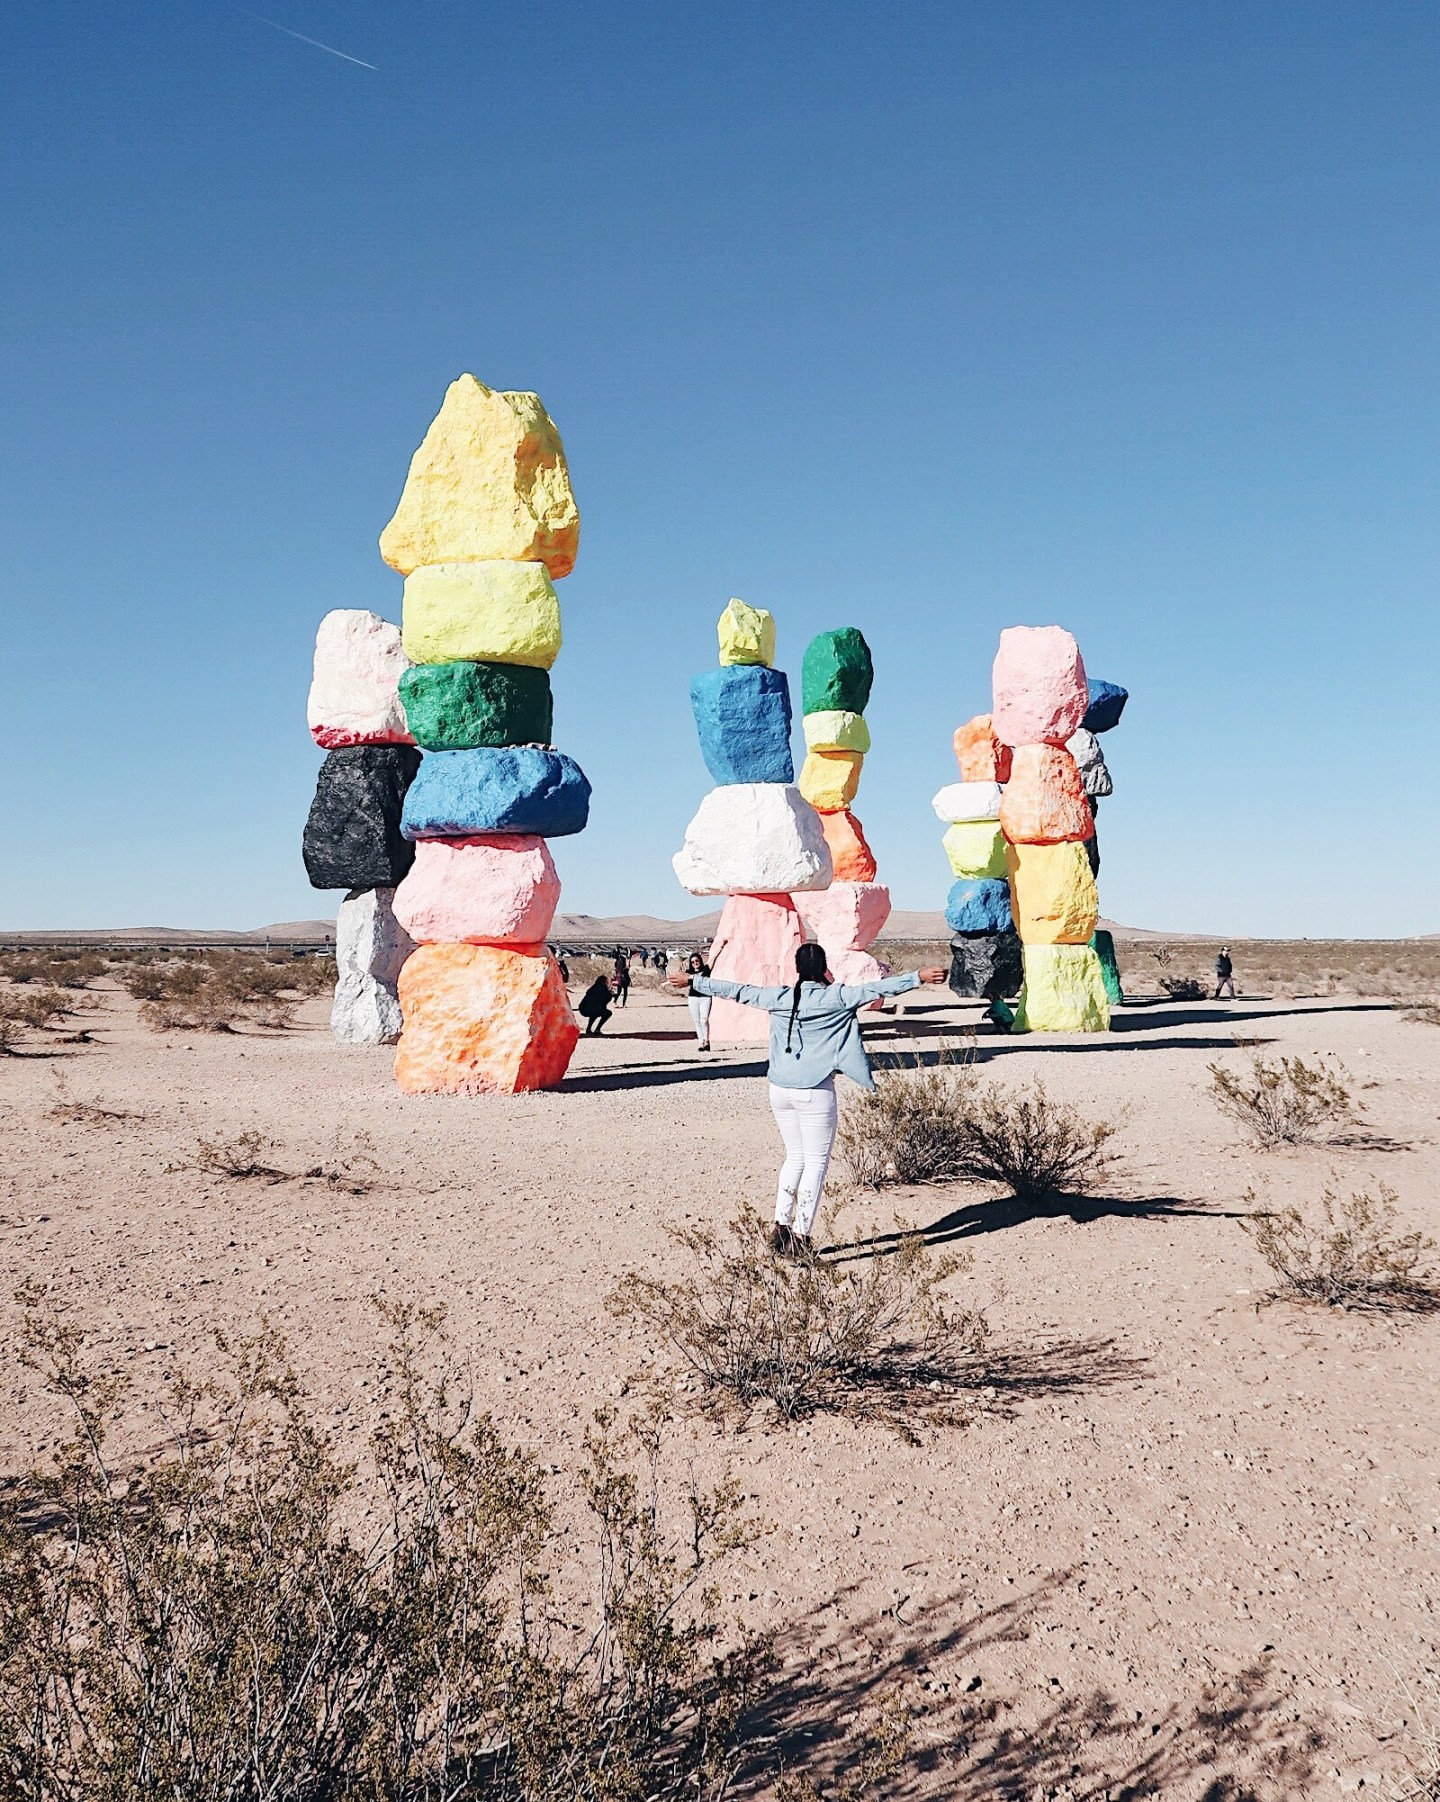 Illustrated by Sade - Woman taking a photo at Seven Magic Mountains in Las Vegas, Nevada.